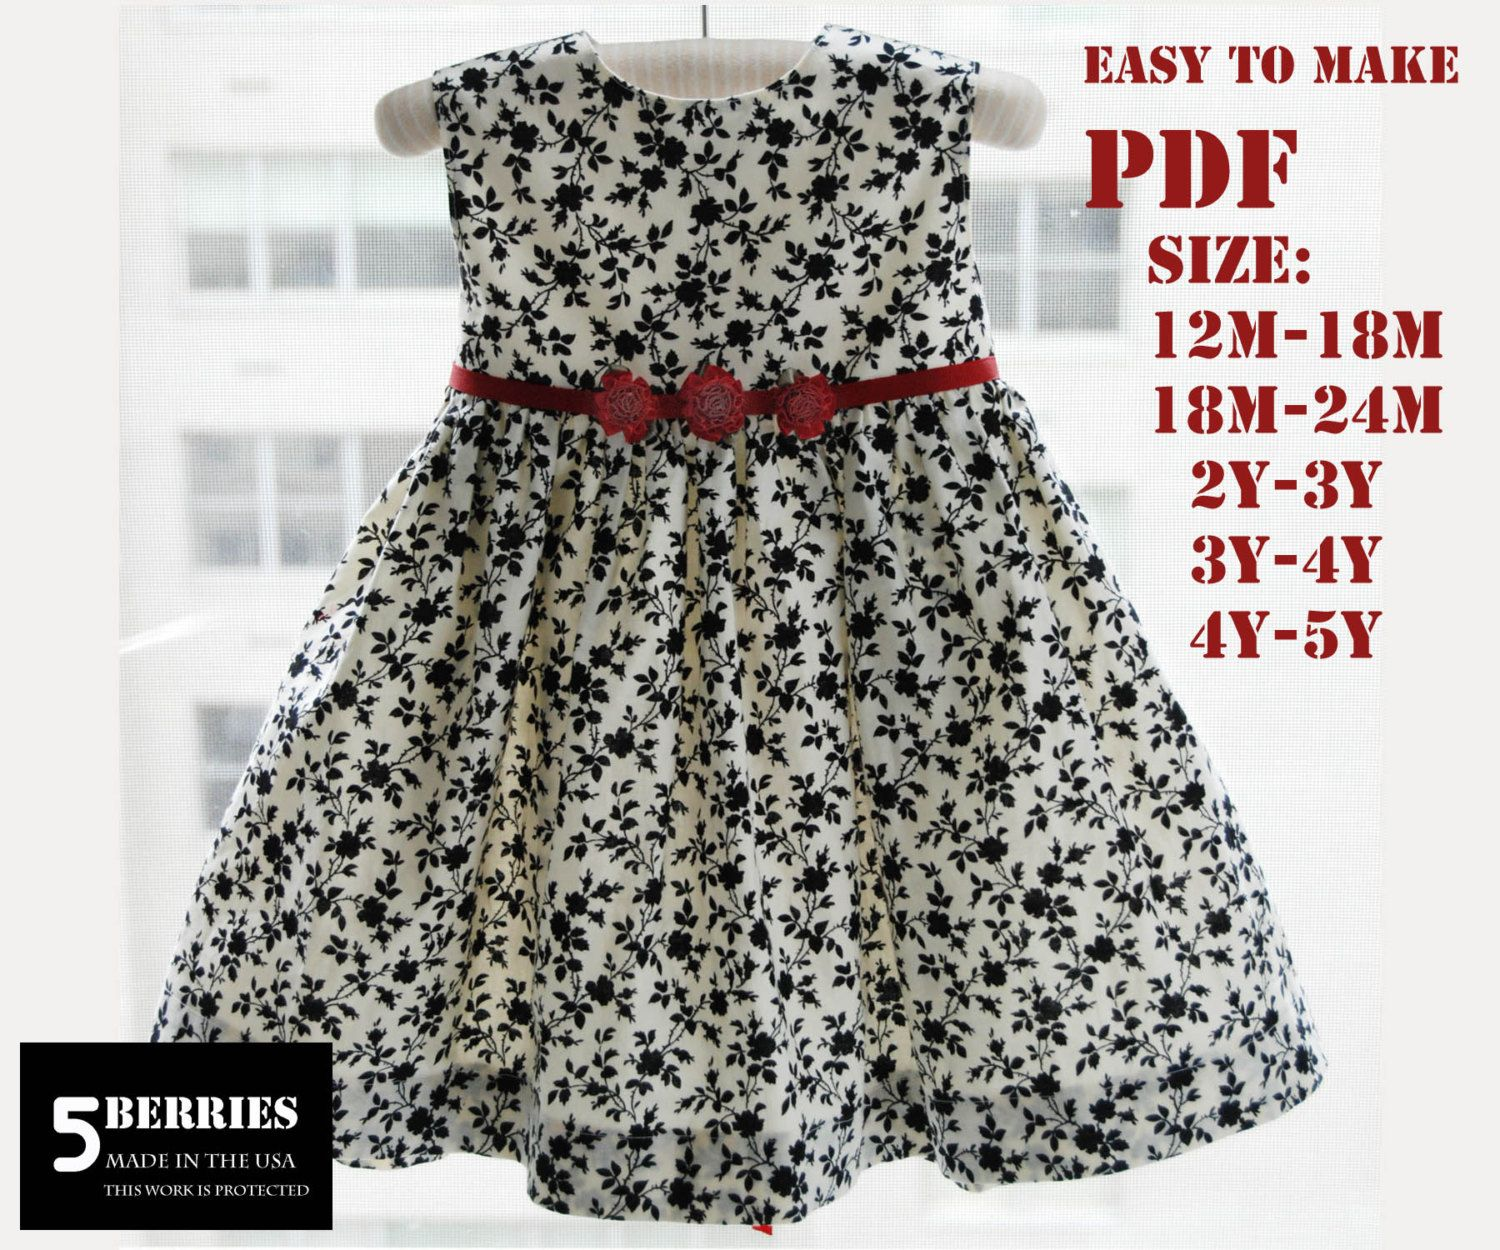 pillowcase dress pattern free | Toddler Girls Clothing at babyGap ...